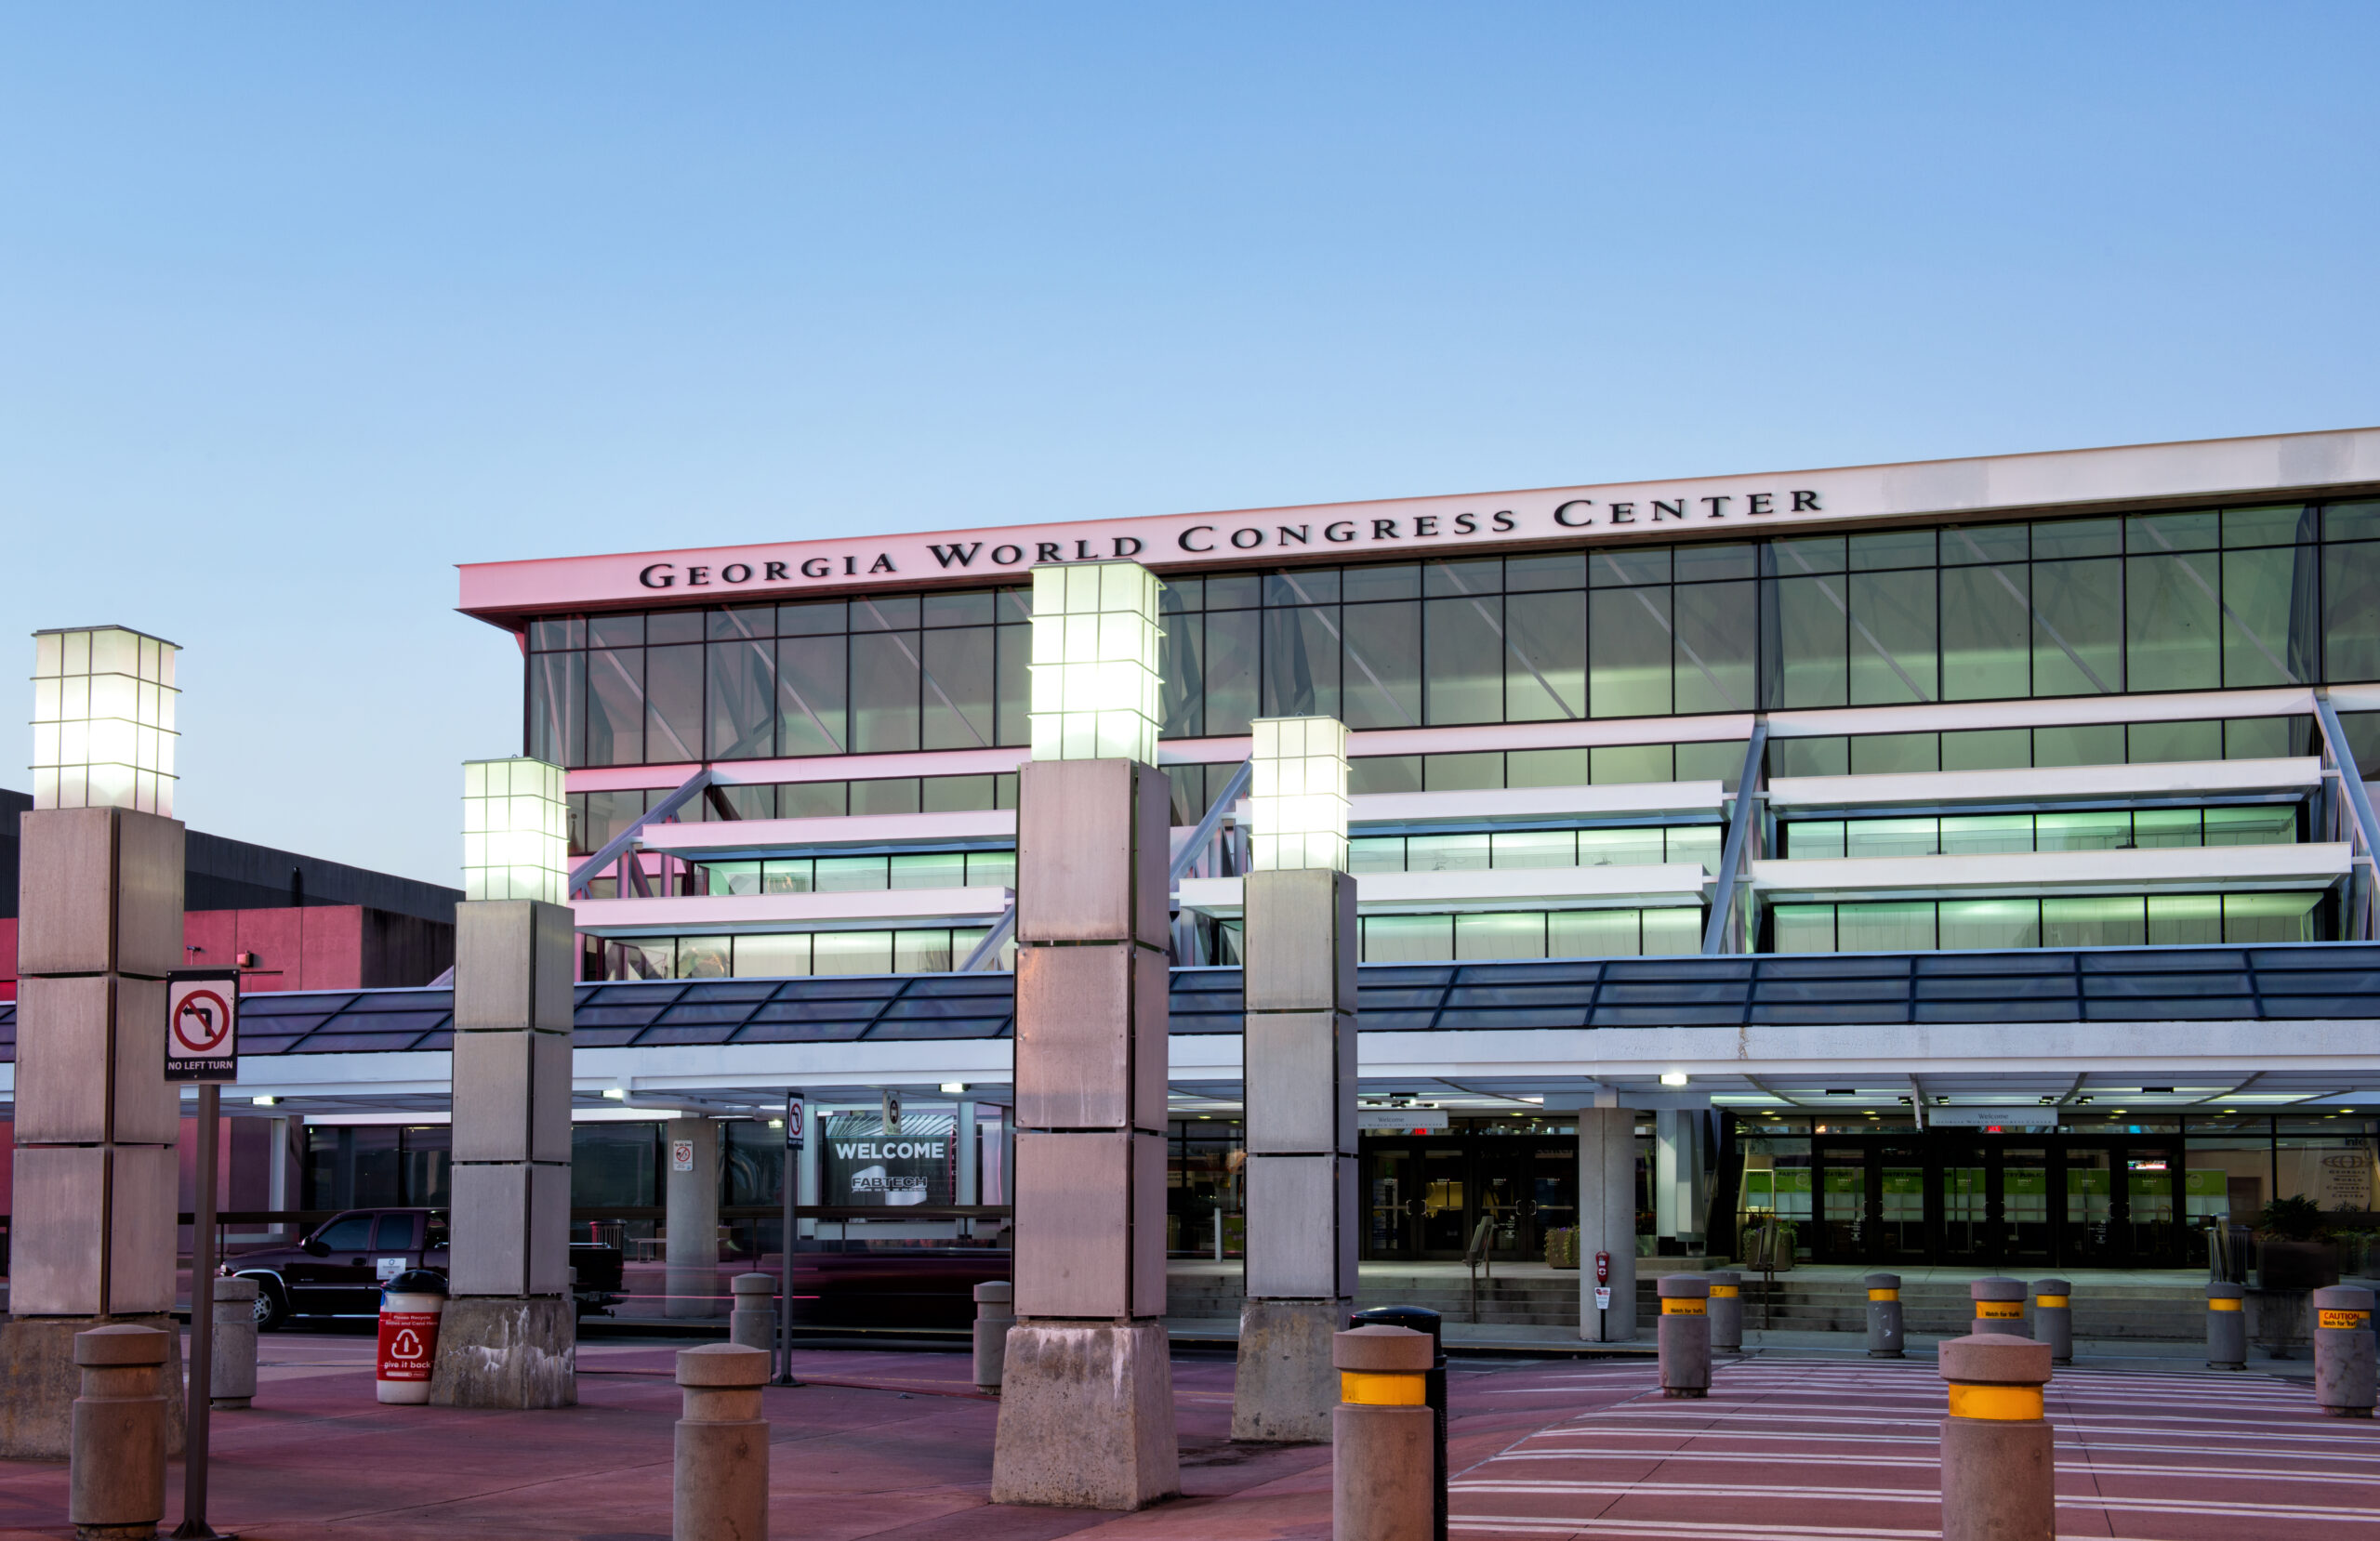 Georgia World Congress Center main entrance with sign at Twilight.